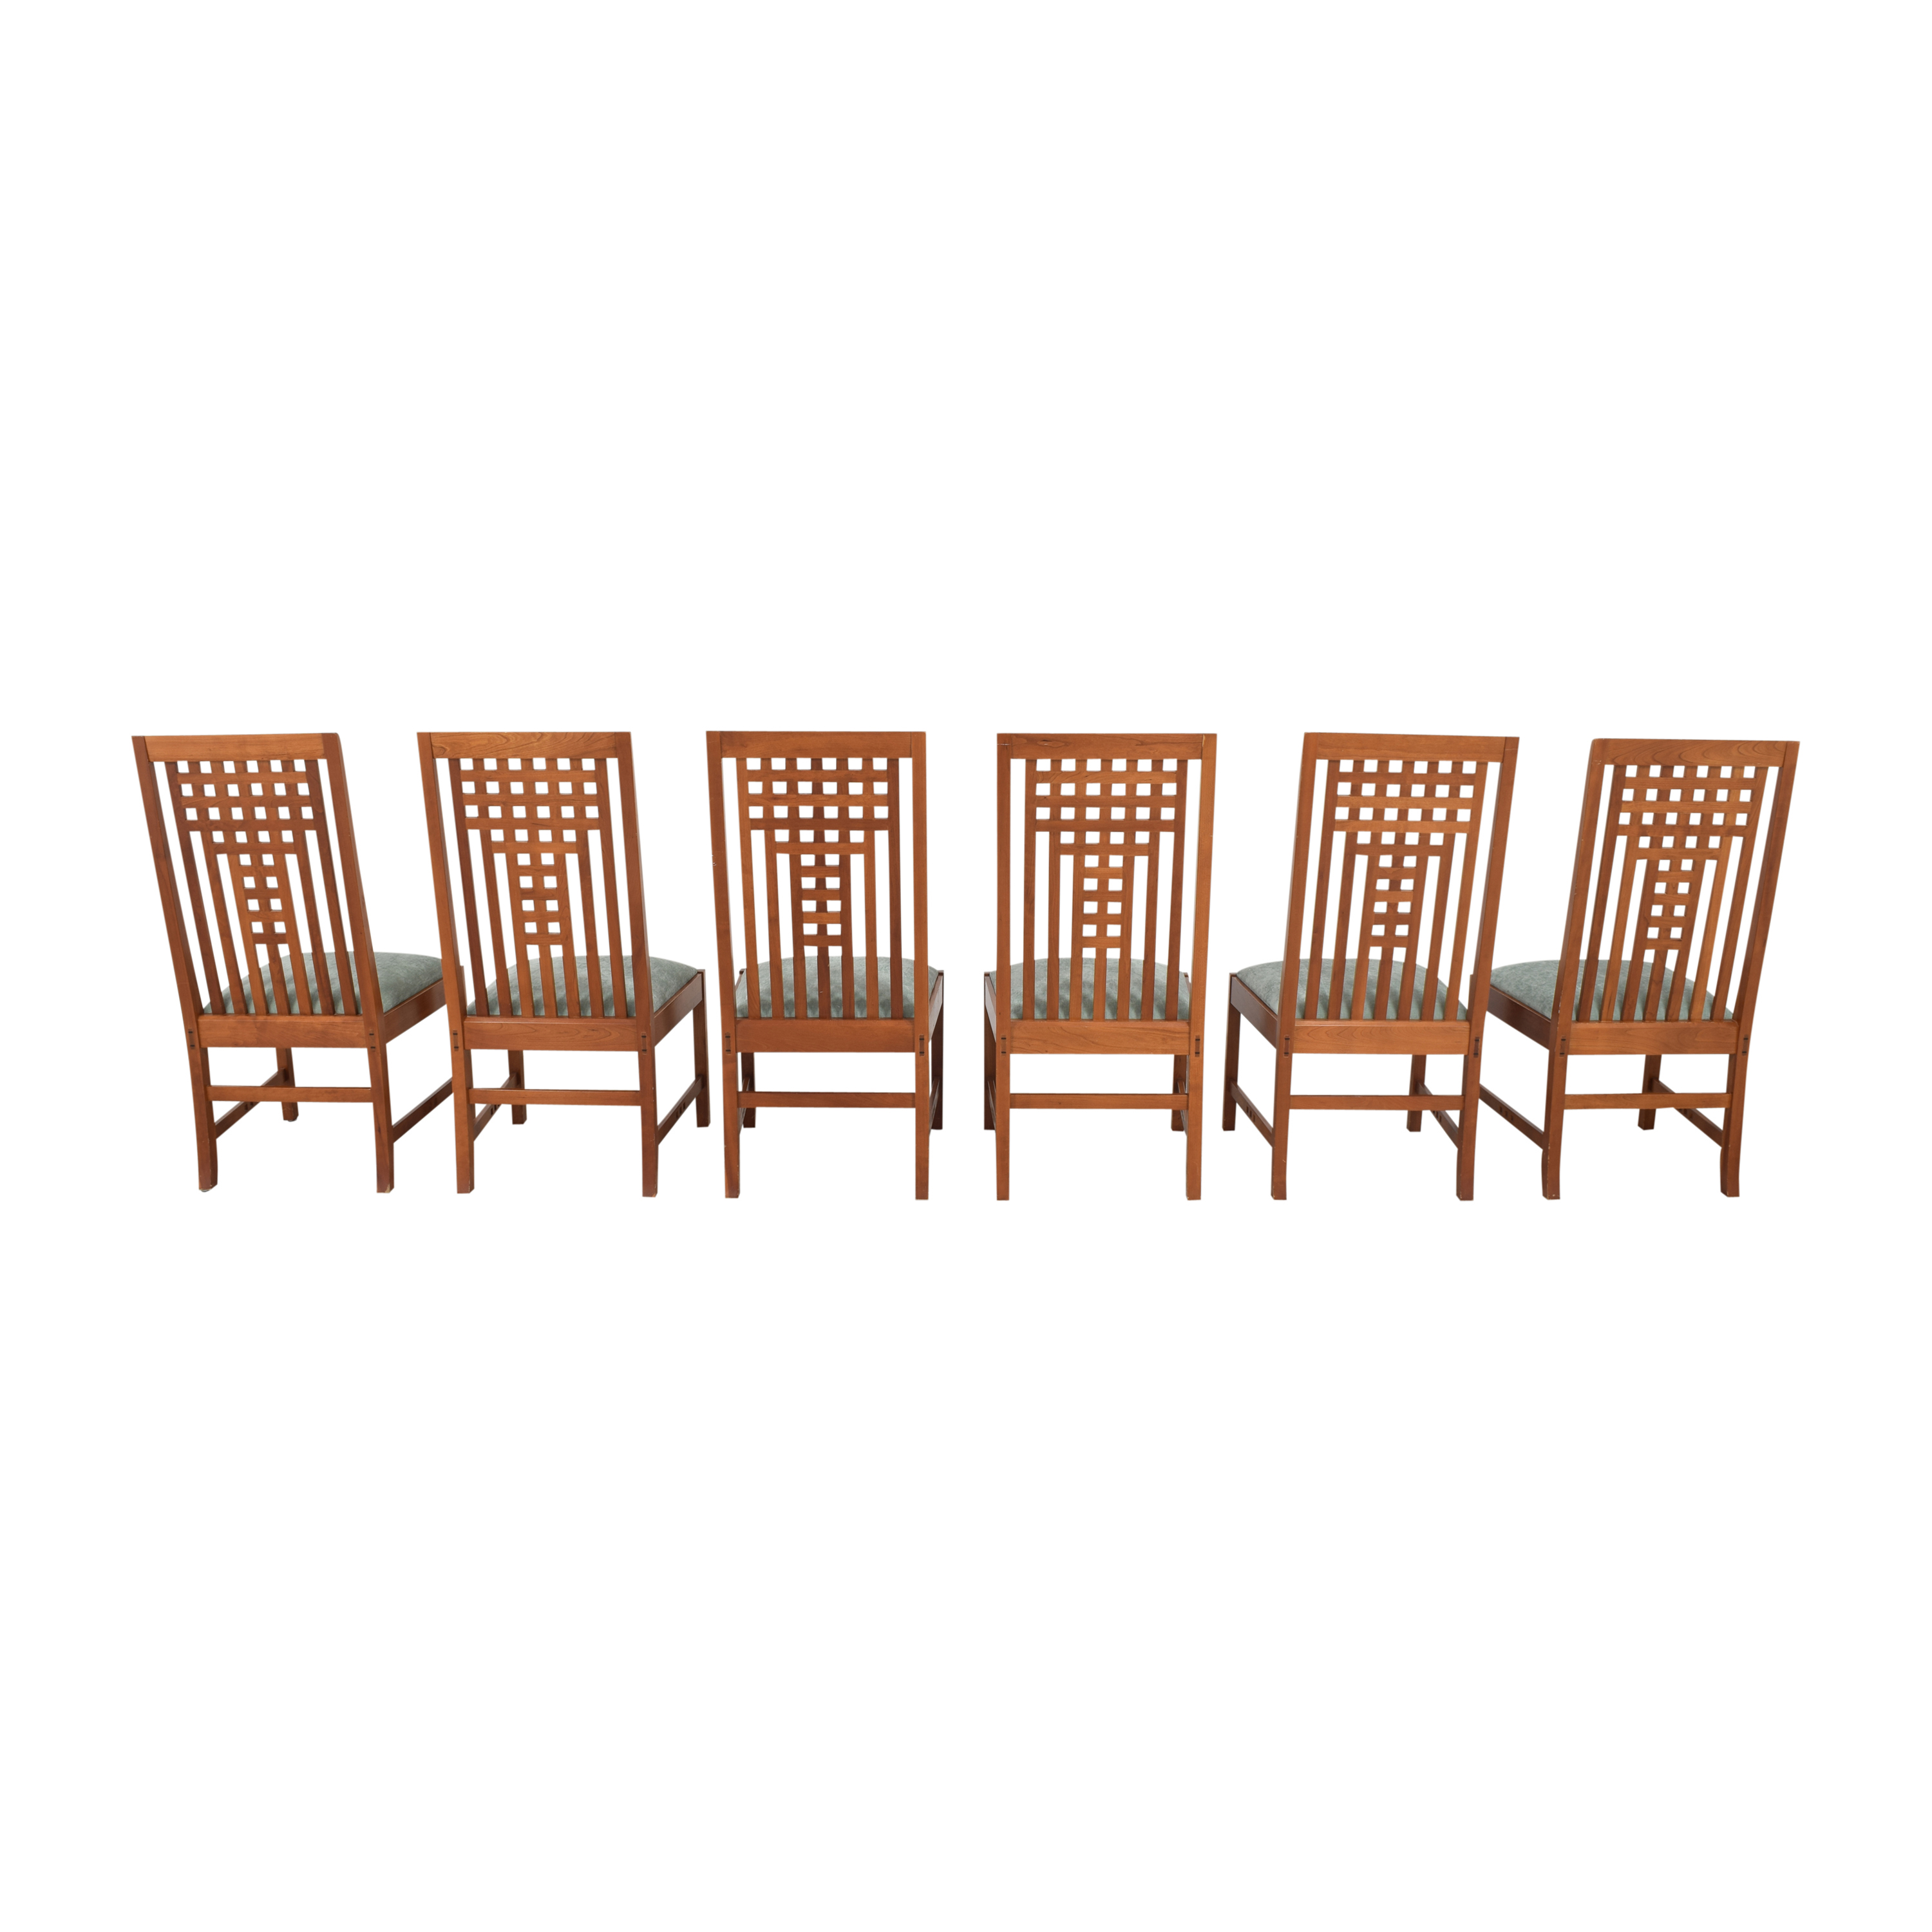 Stickley Furniture Stickley Furniture 21st Century Lattice Dining Side Chairs used